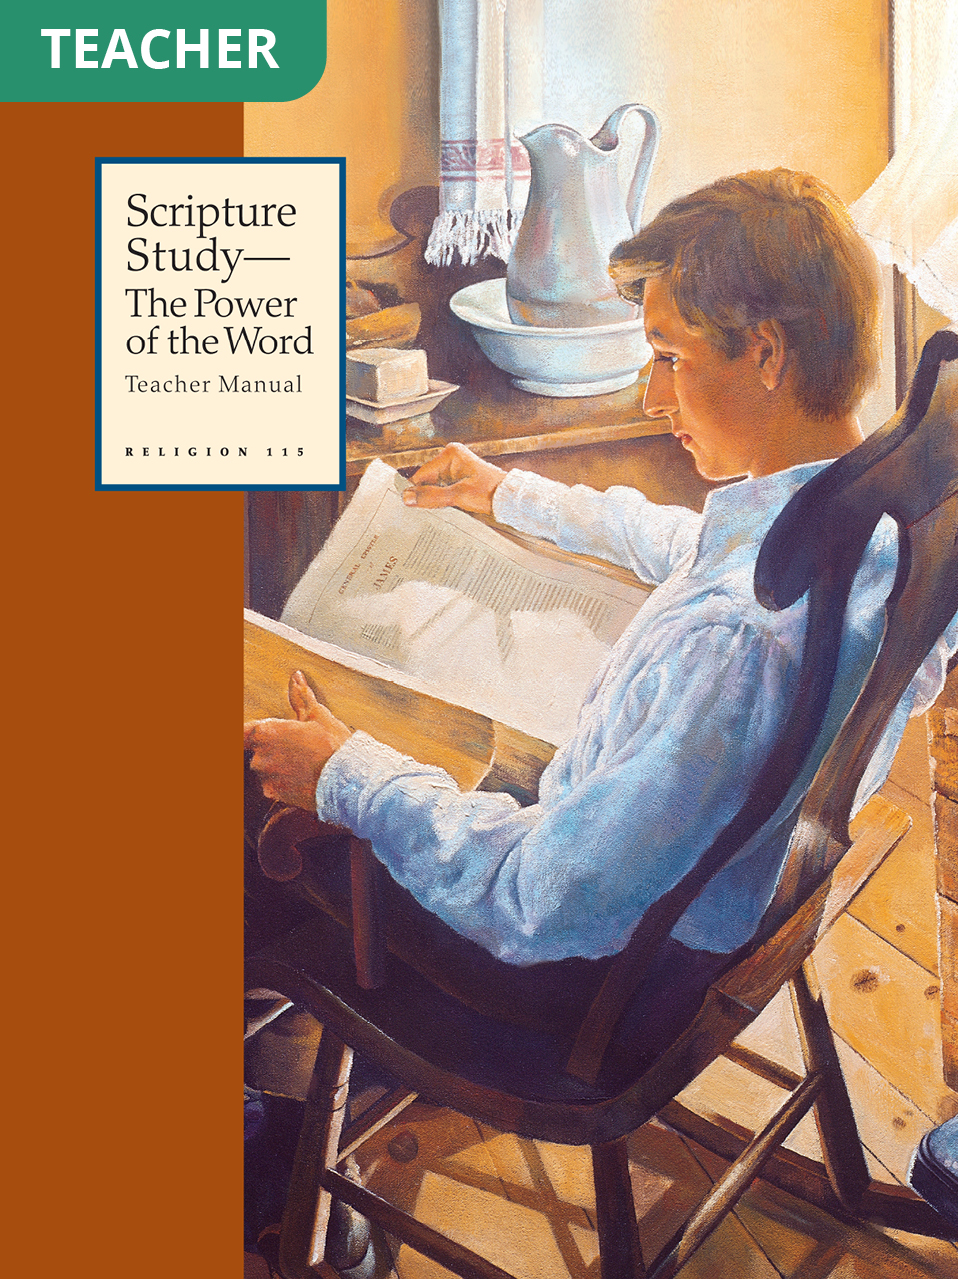 Scripture Study—The Power of the Word Teacher Manual (Rel 215)